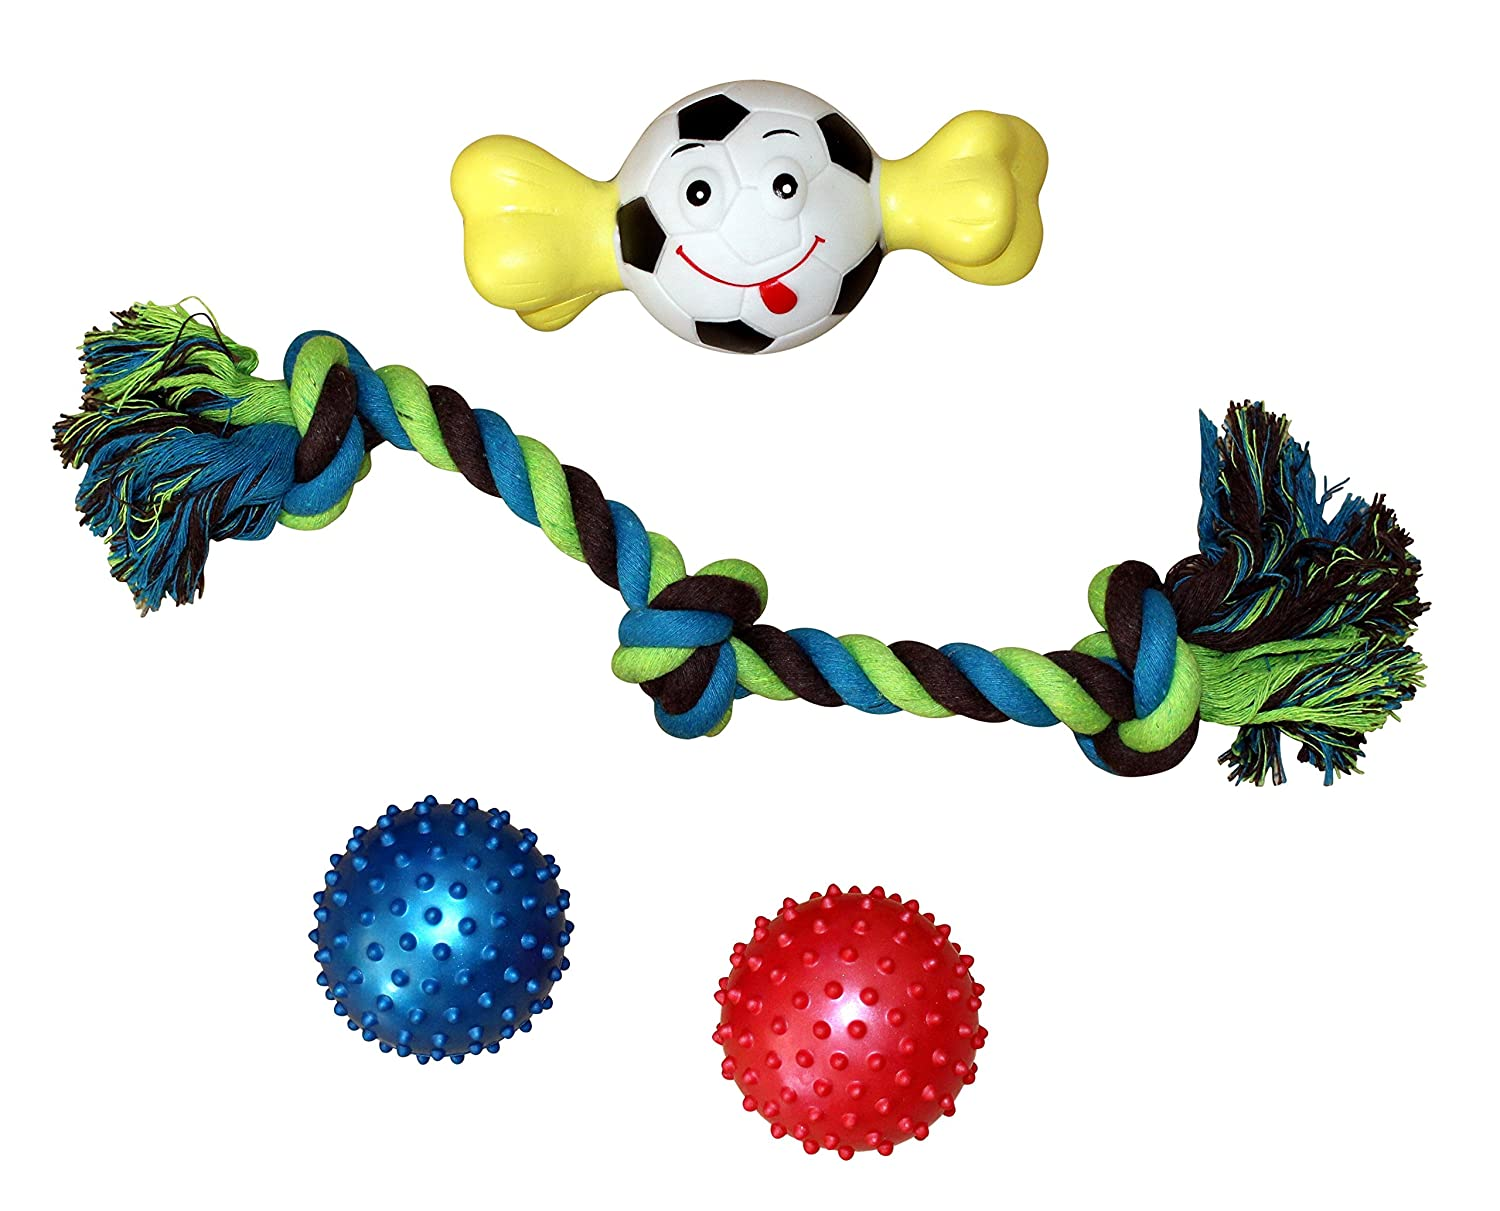 Joyful Pet- 4 Piece Dog Toy Bundle (1) 16.5 inch Rope Toy (2) Soft Spiked Chew Balls (1) Sport Ball Bone Squeaker Toy (Assorted)